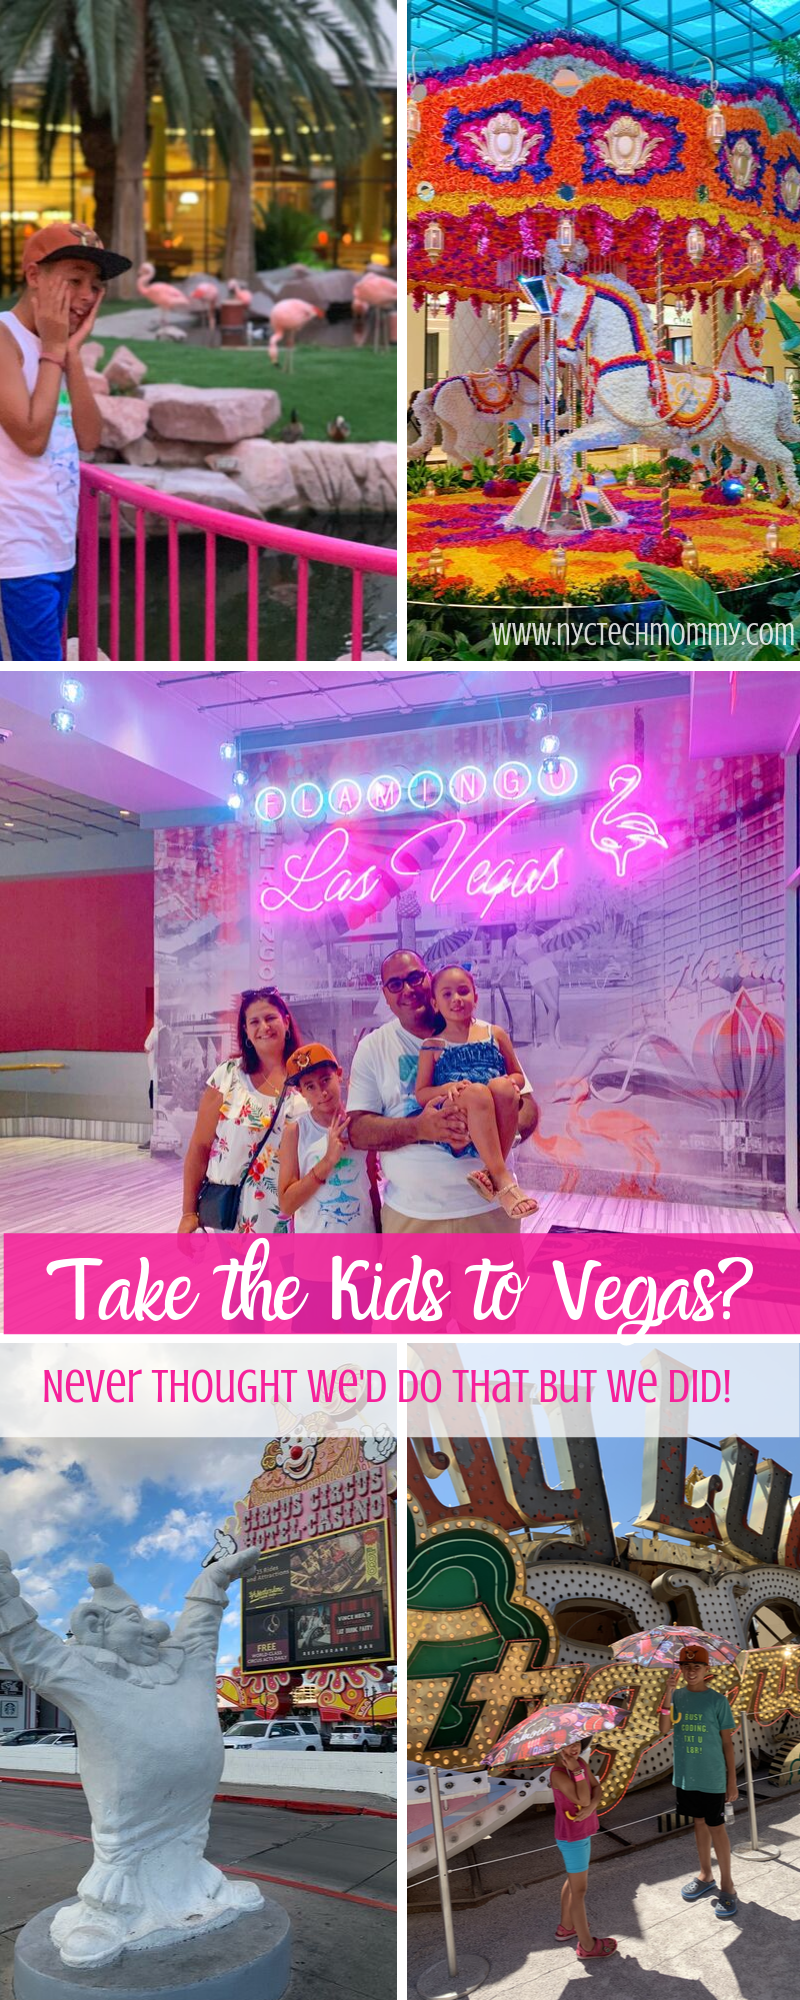 Never thought we'd take the kids to Las Vegas but we did! Check out our tips for a great family trip.